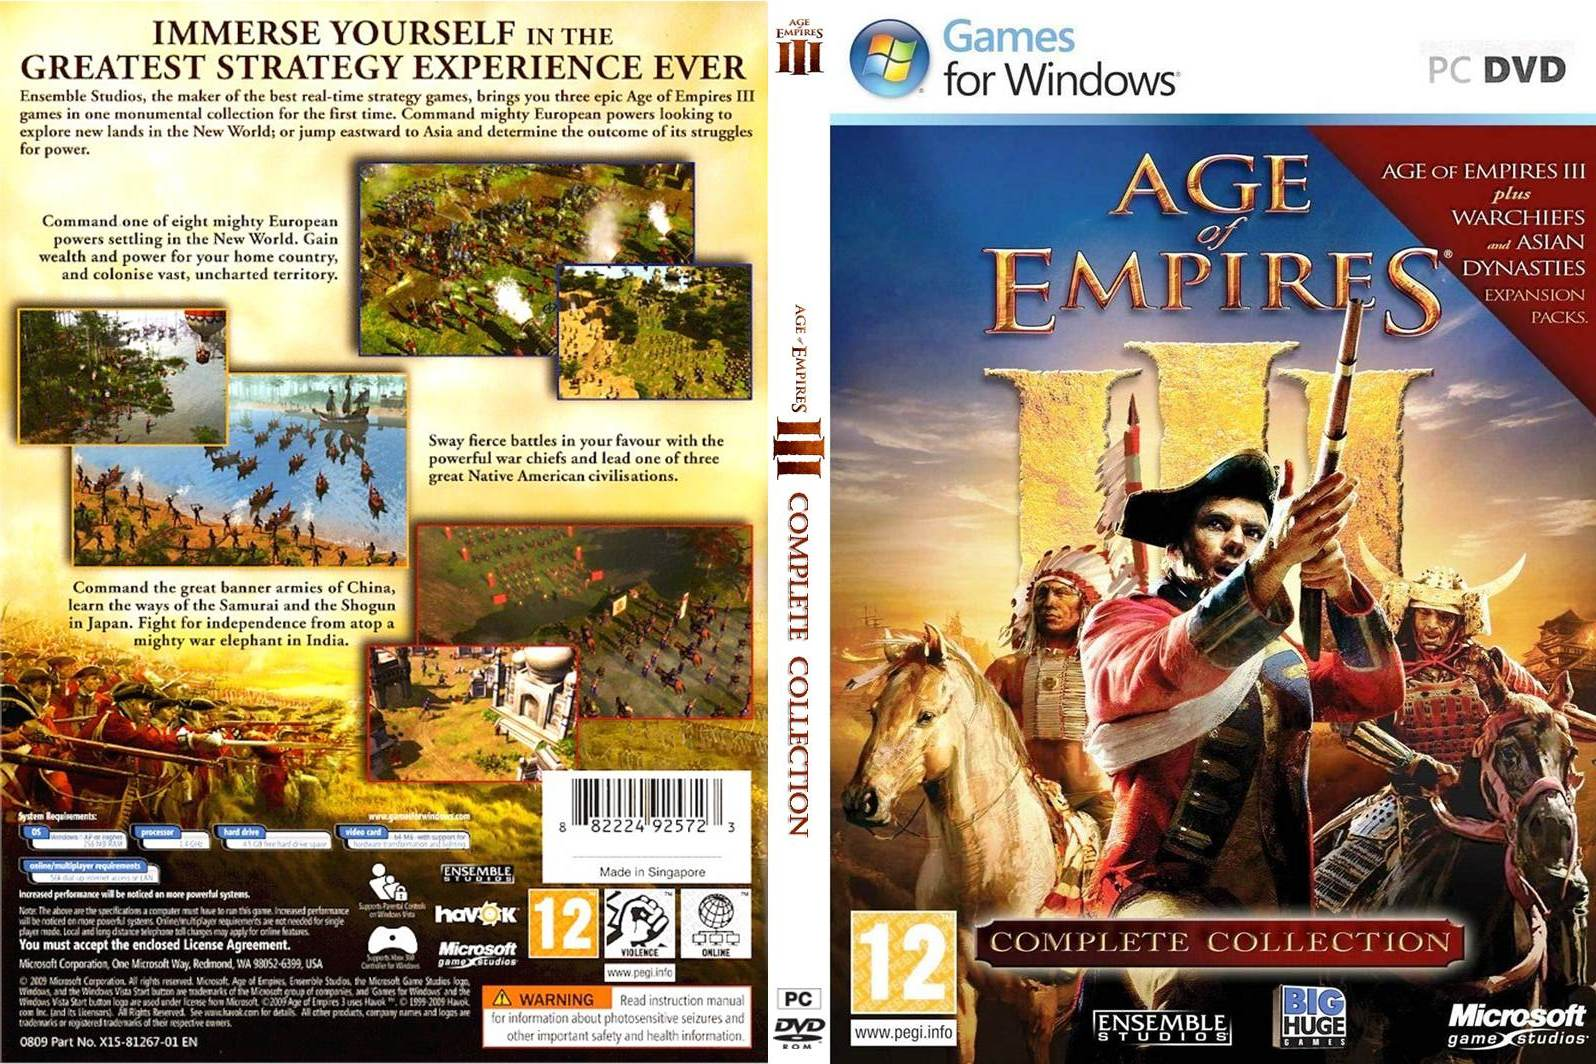 http://3.bp.blogspot.com/-SXUtG9EhYBE/TjWHLGxc5II/AAAAAAAABm8/sFCyjXh5T3U/s1600/Age_Of_Empires_III__Complete_Collection.jpg